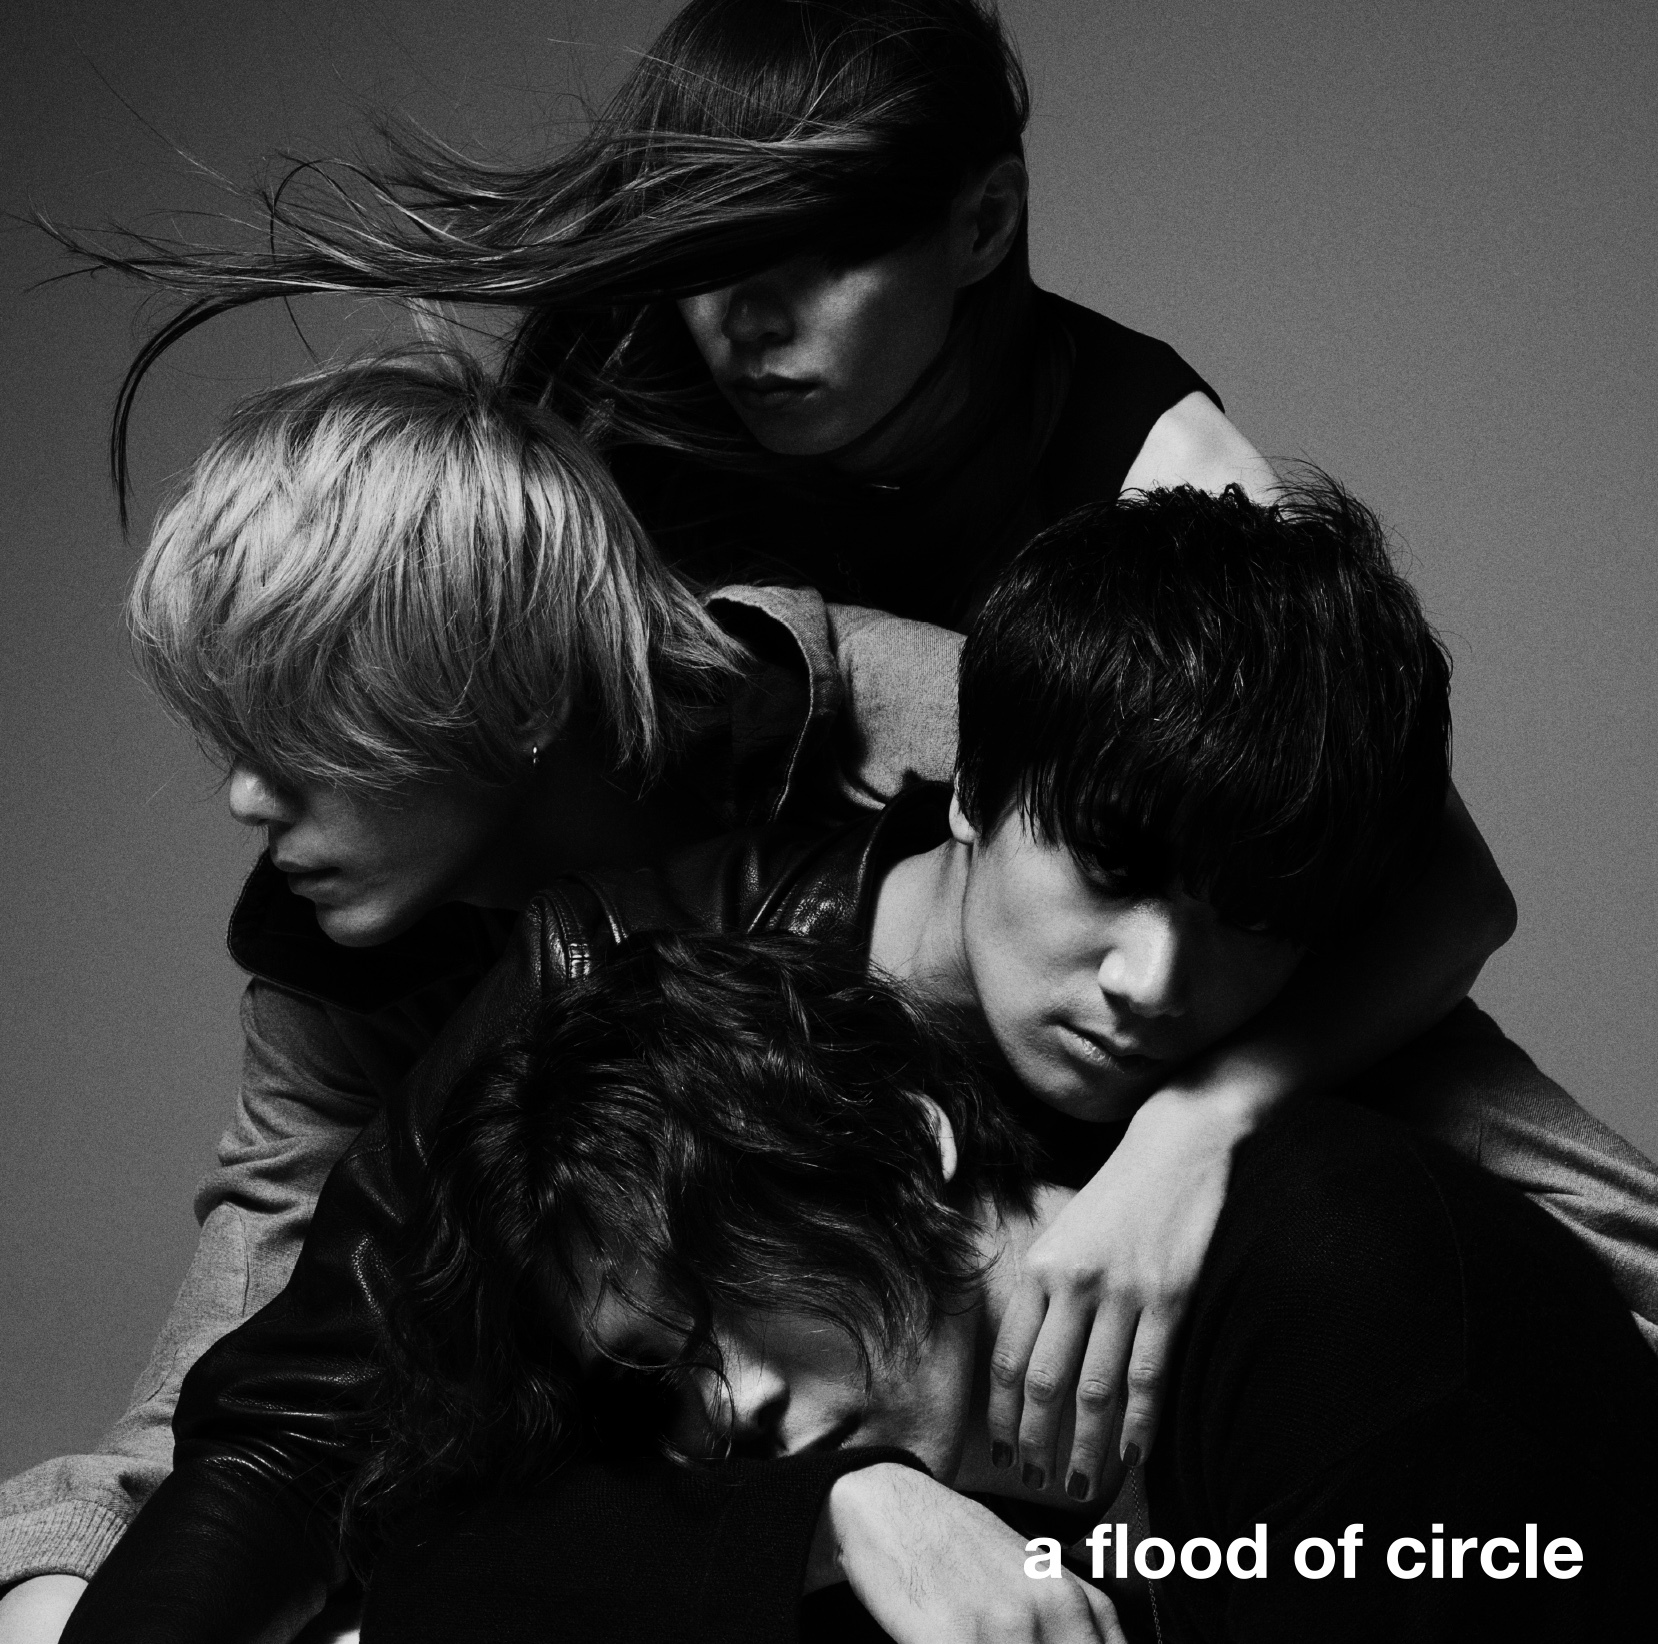 『a flood of circle』